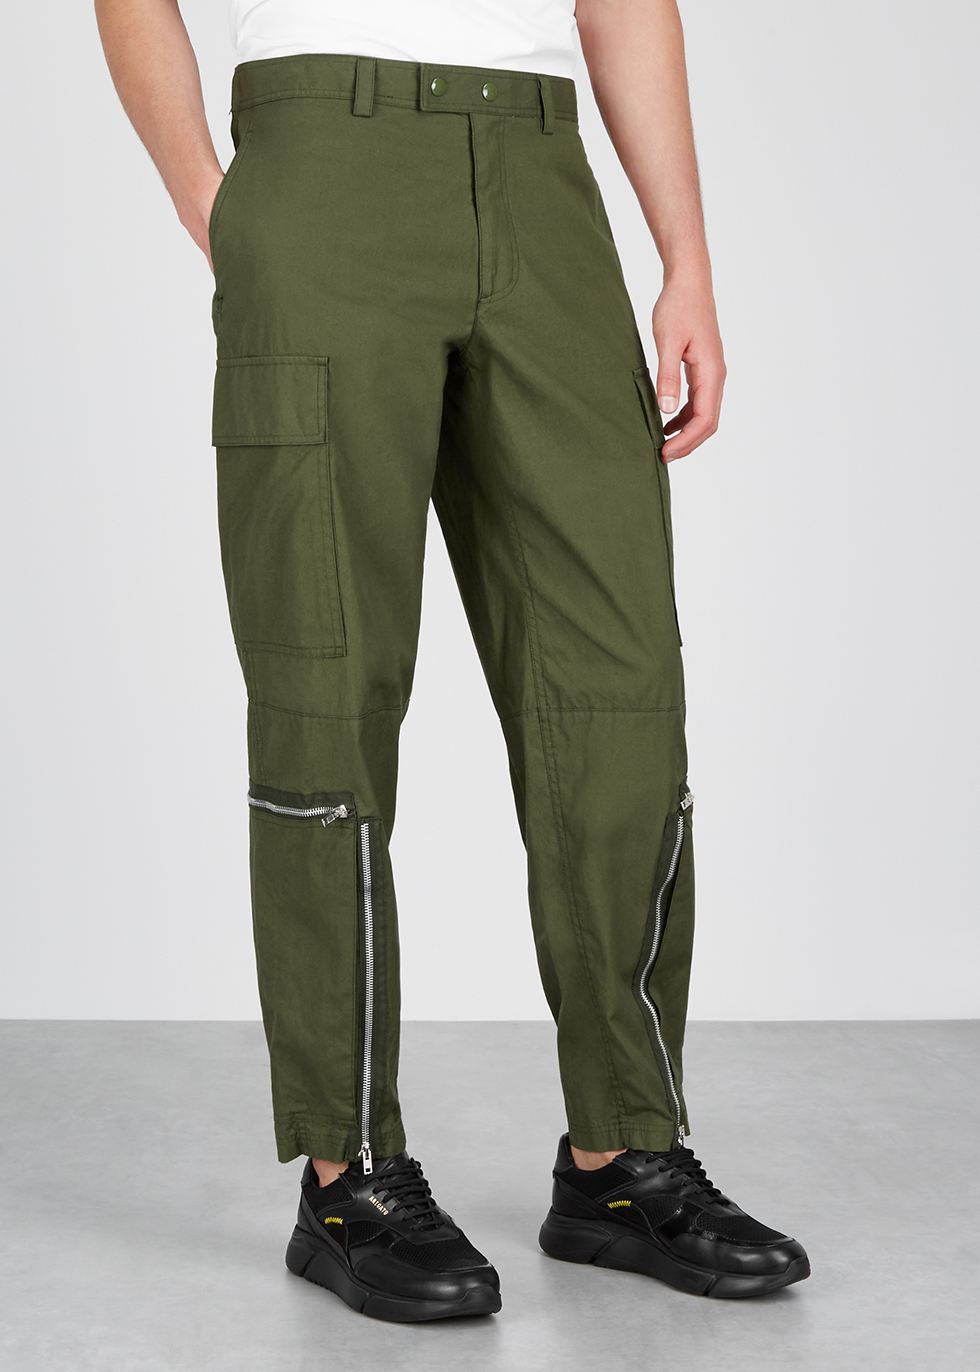 Army green cotton cargo trousers - Helmut Lang